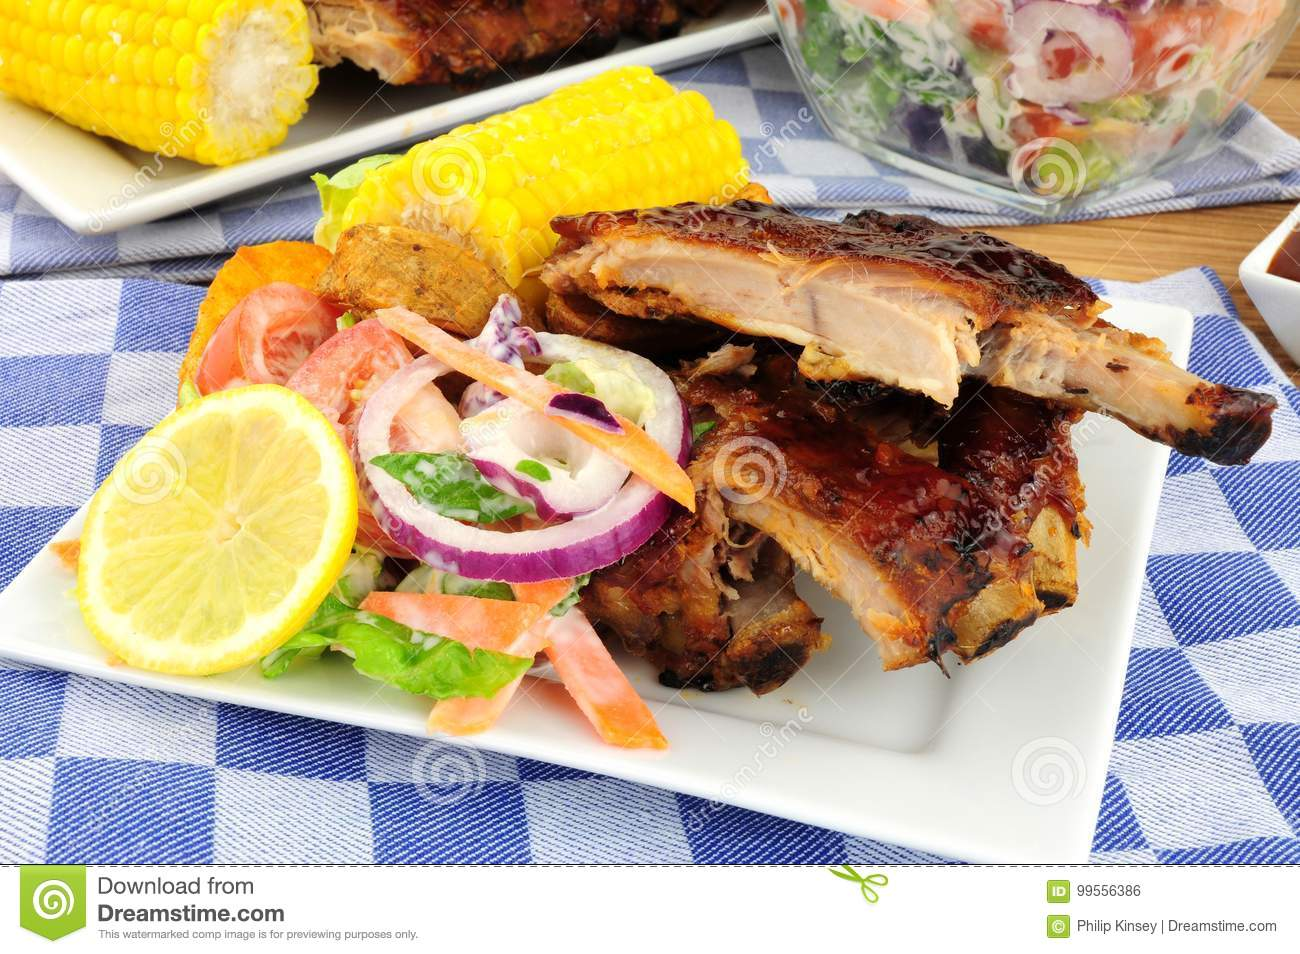 Barbecued Pork Ribs Meal